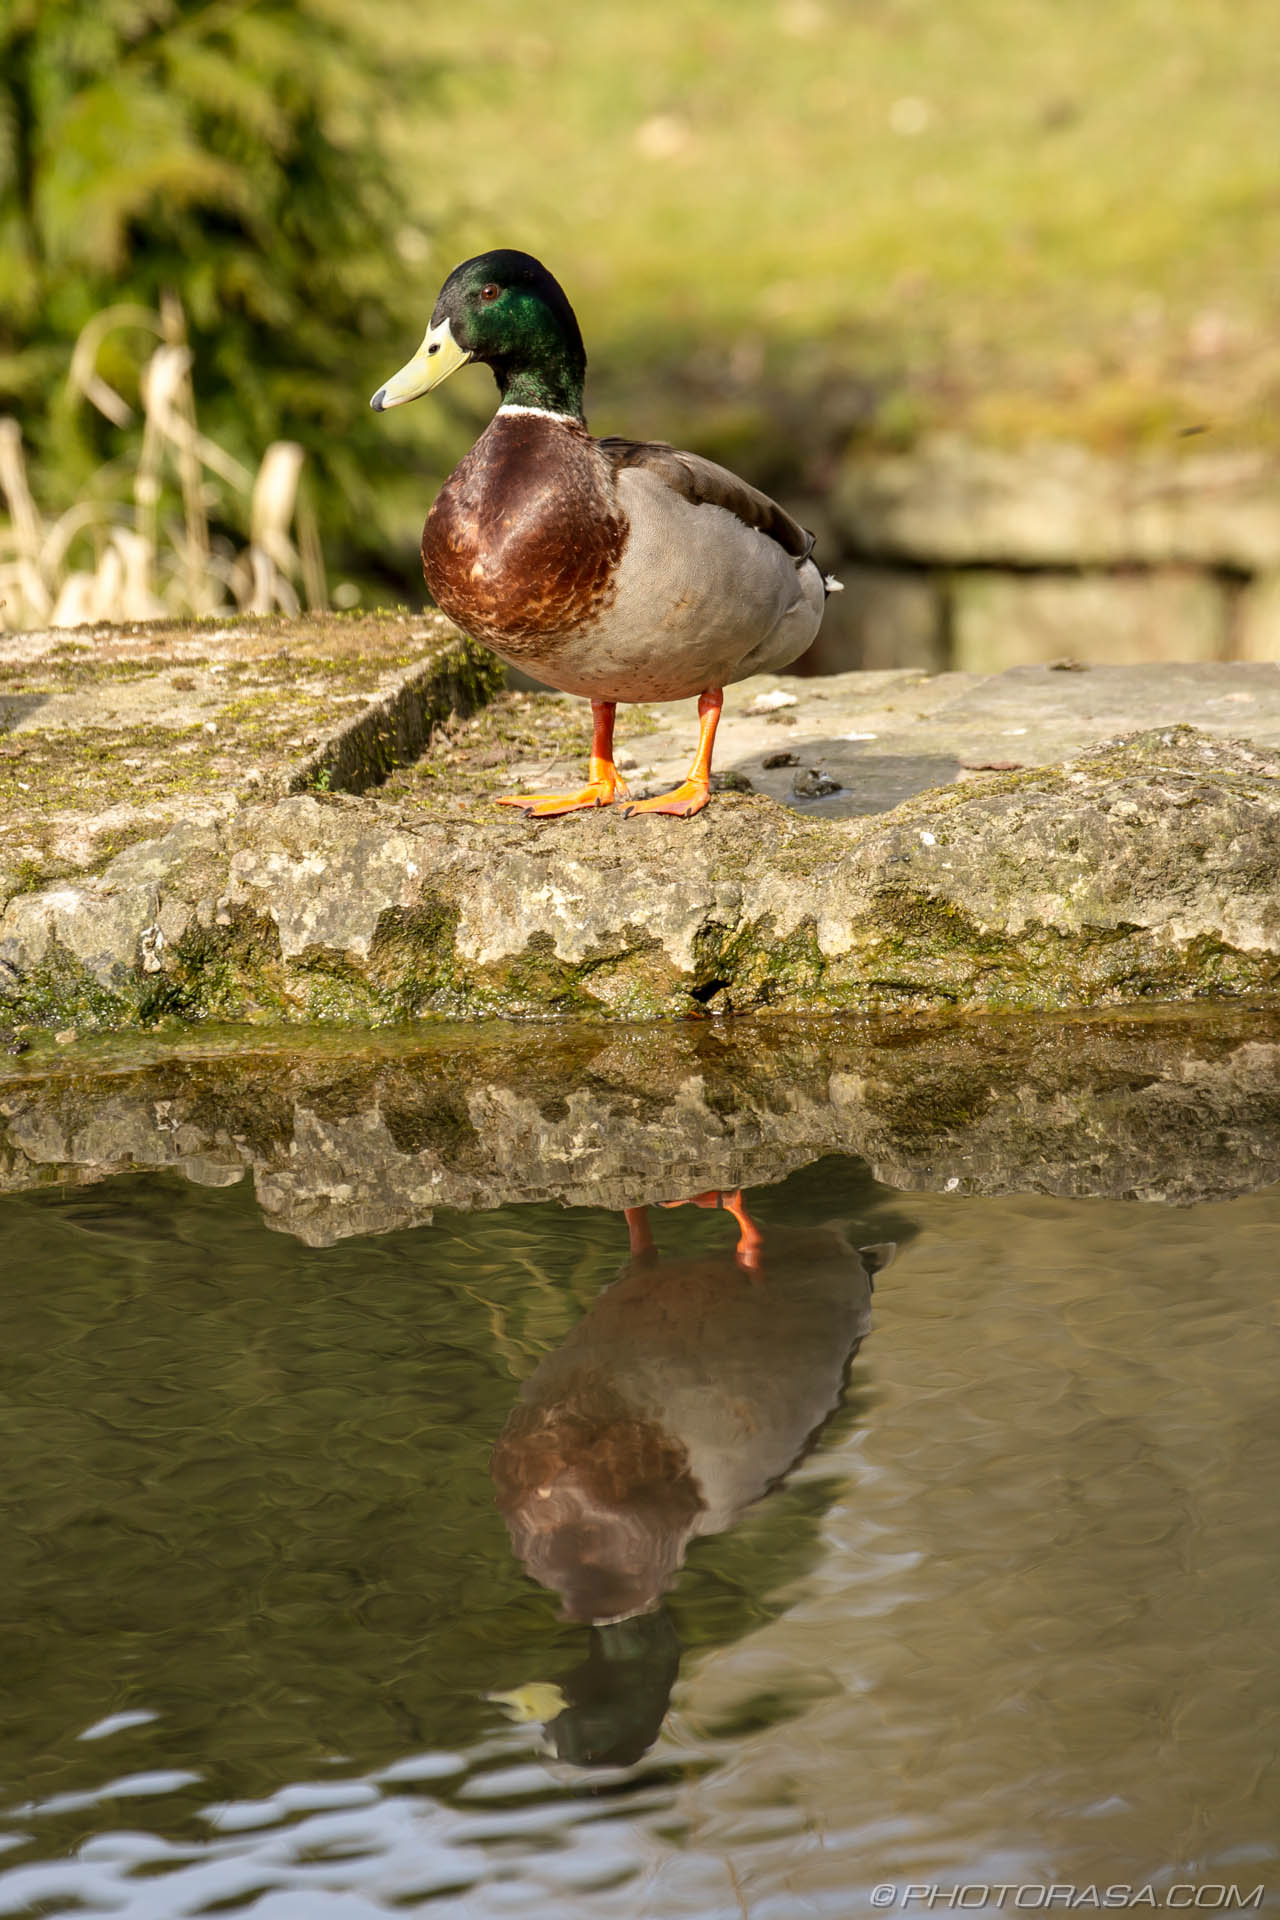 http://photorasa.com/mallard-ducks/duck-reflection/